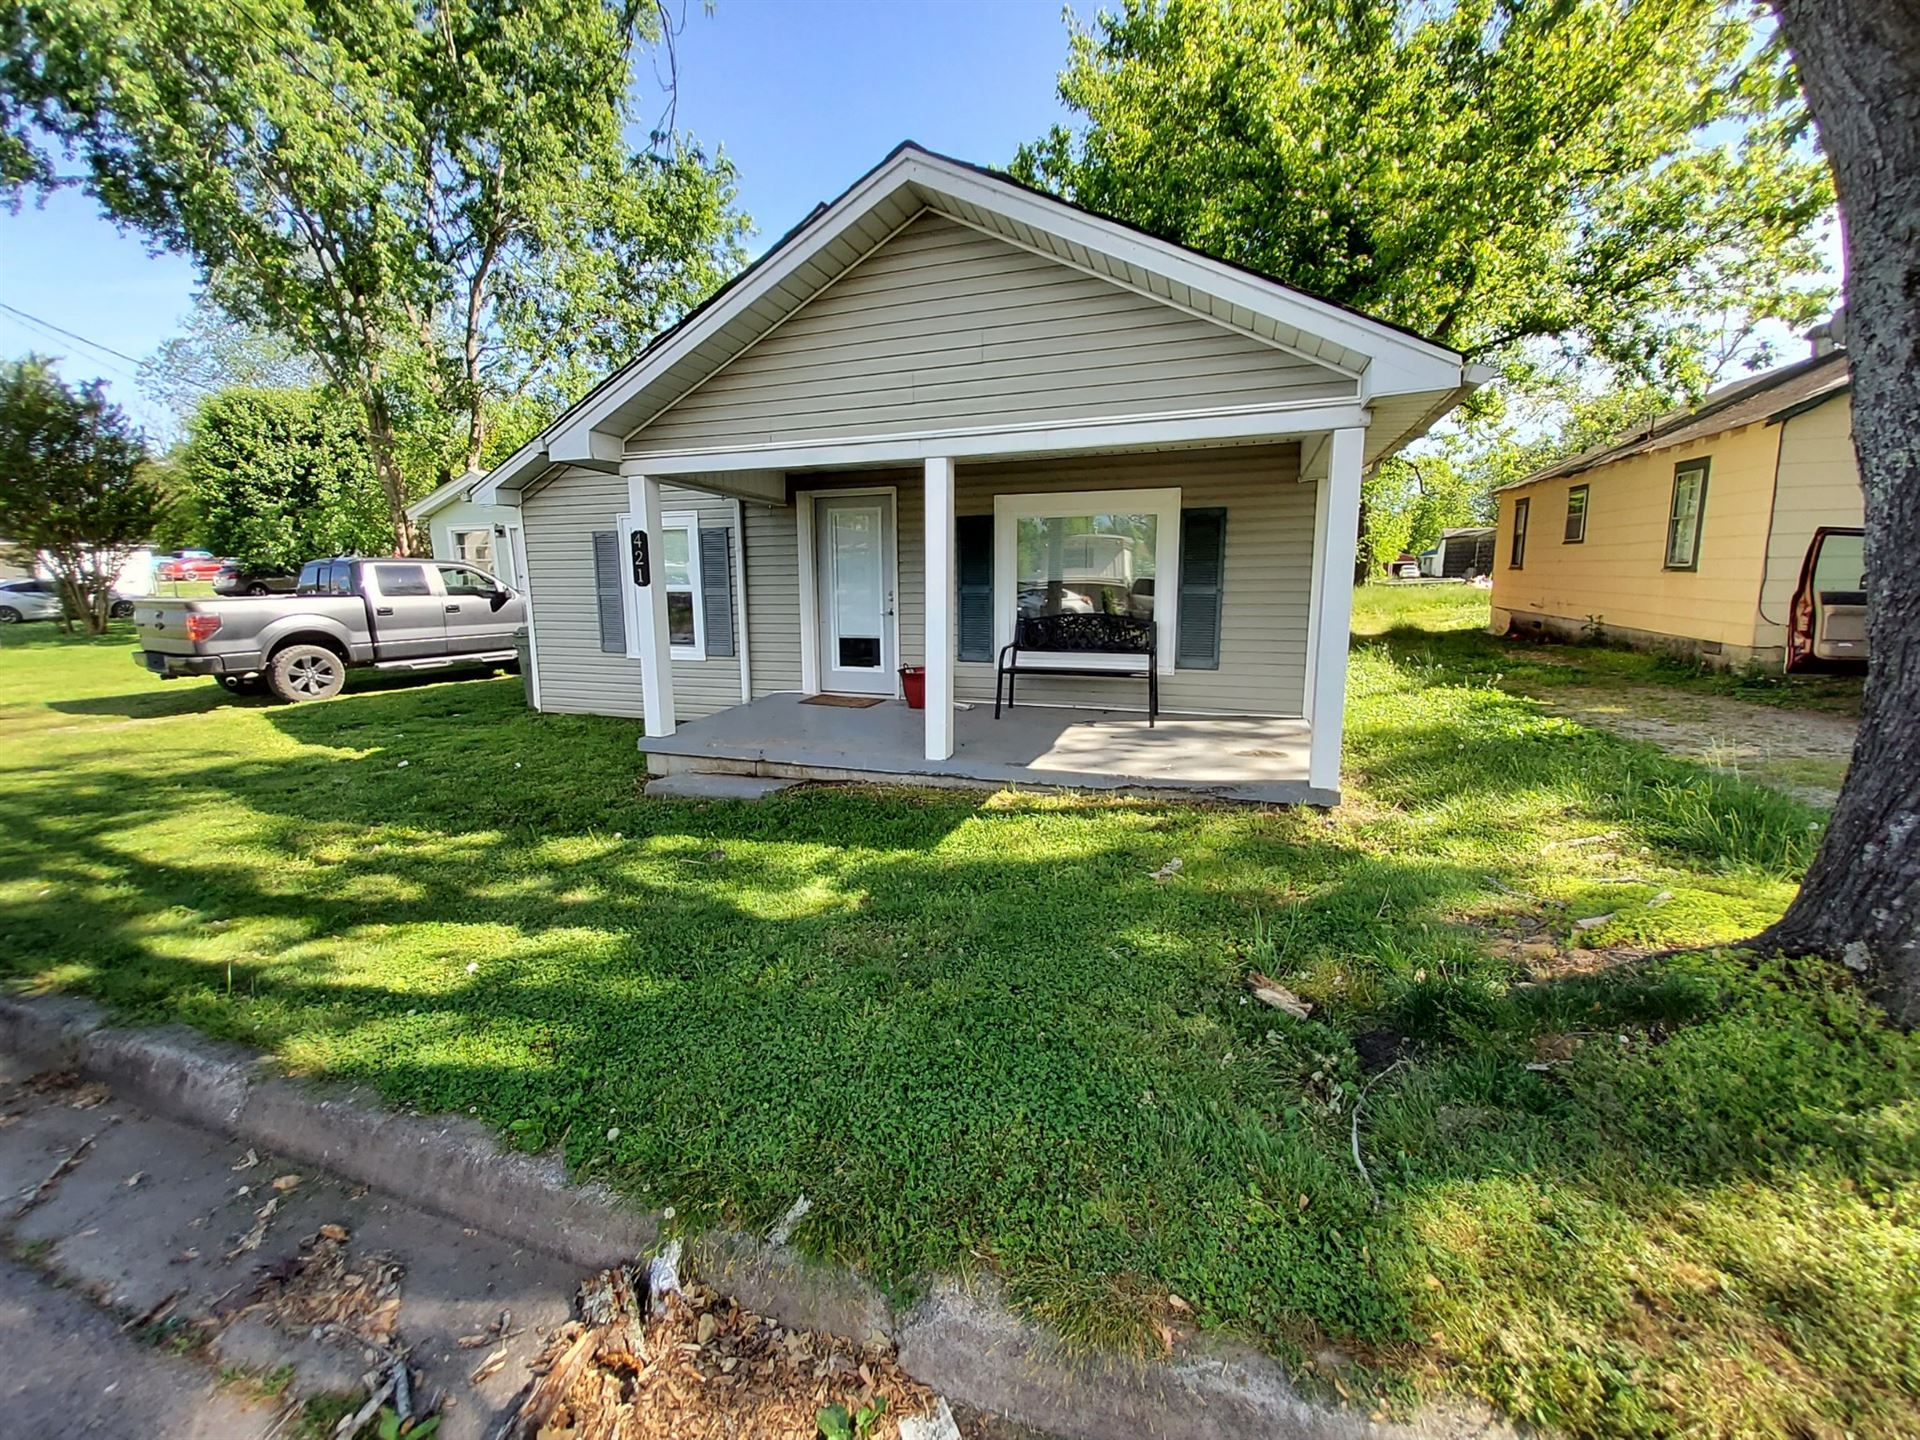 421 5th St, Lawrenceburg, TN 38464 - MLS#: 2249739